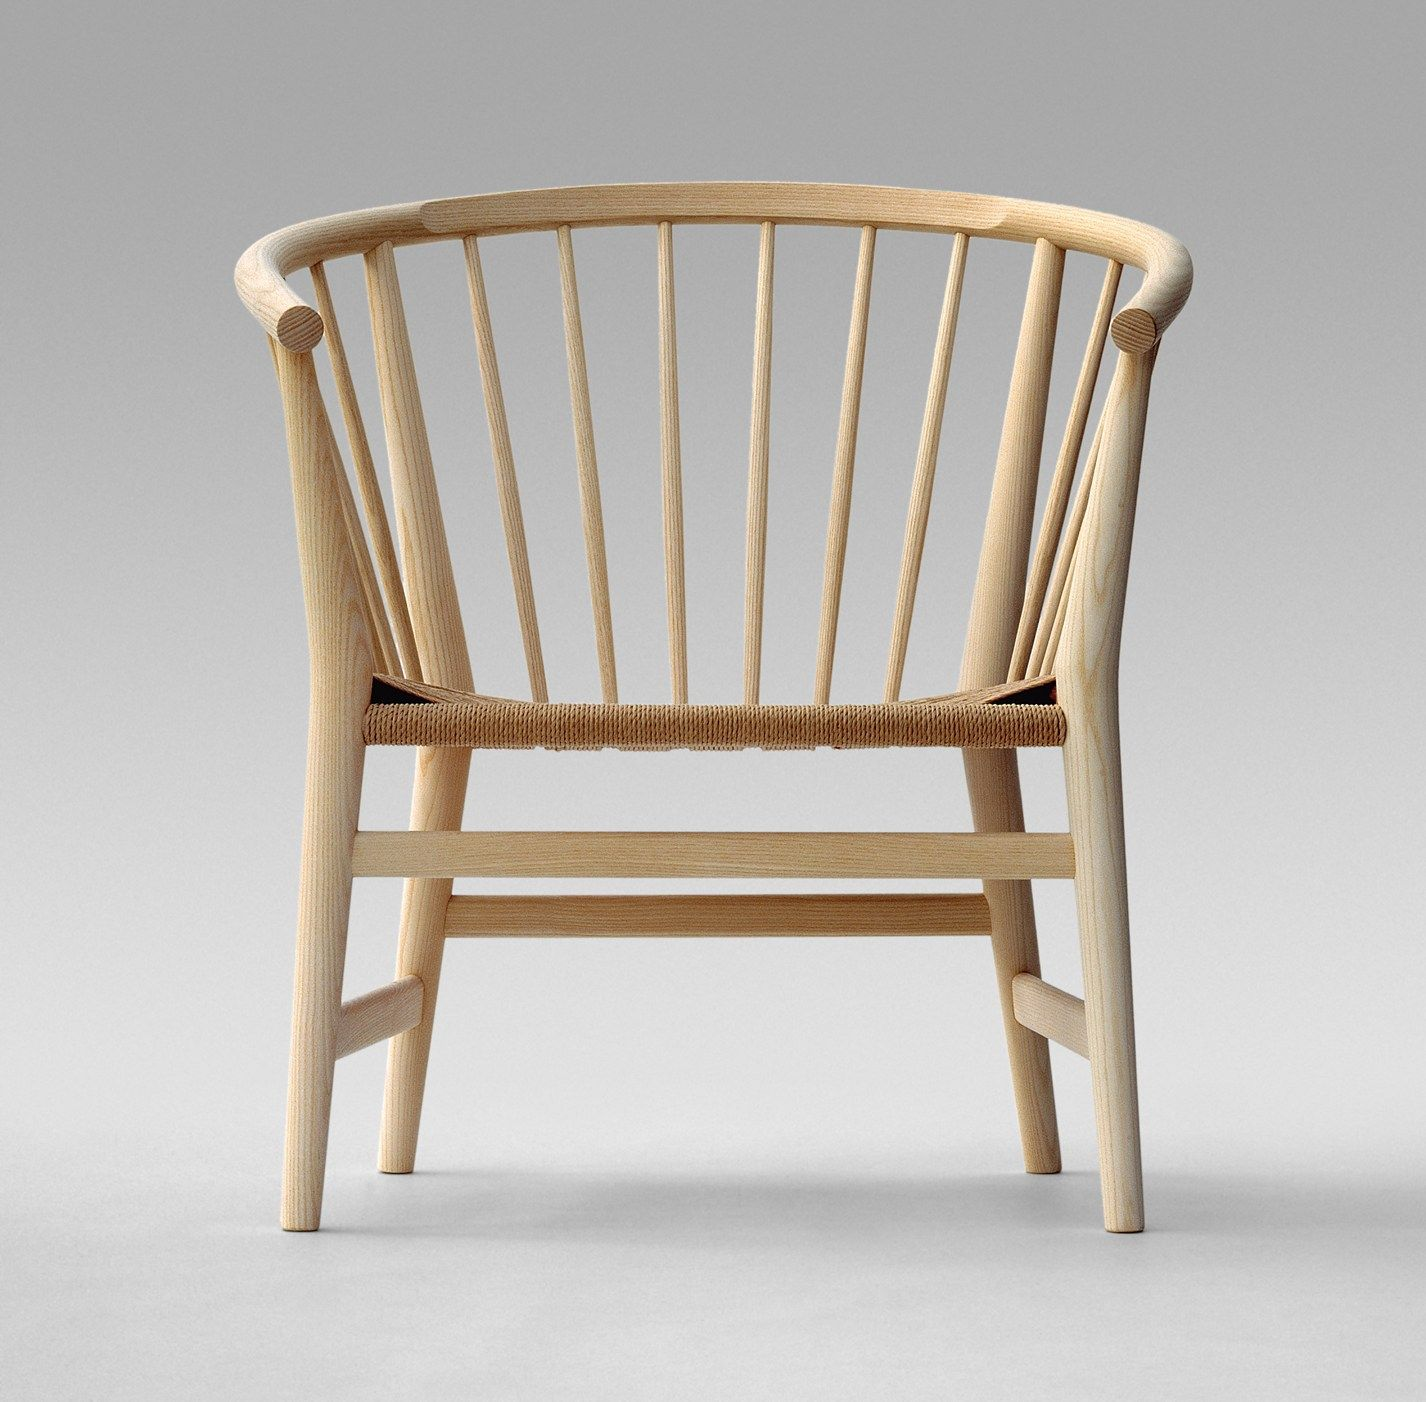 Pp112 By Hans Wegner For Pp Mobler Famous Chair Designs Chair Design Furniture Design